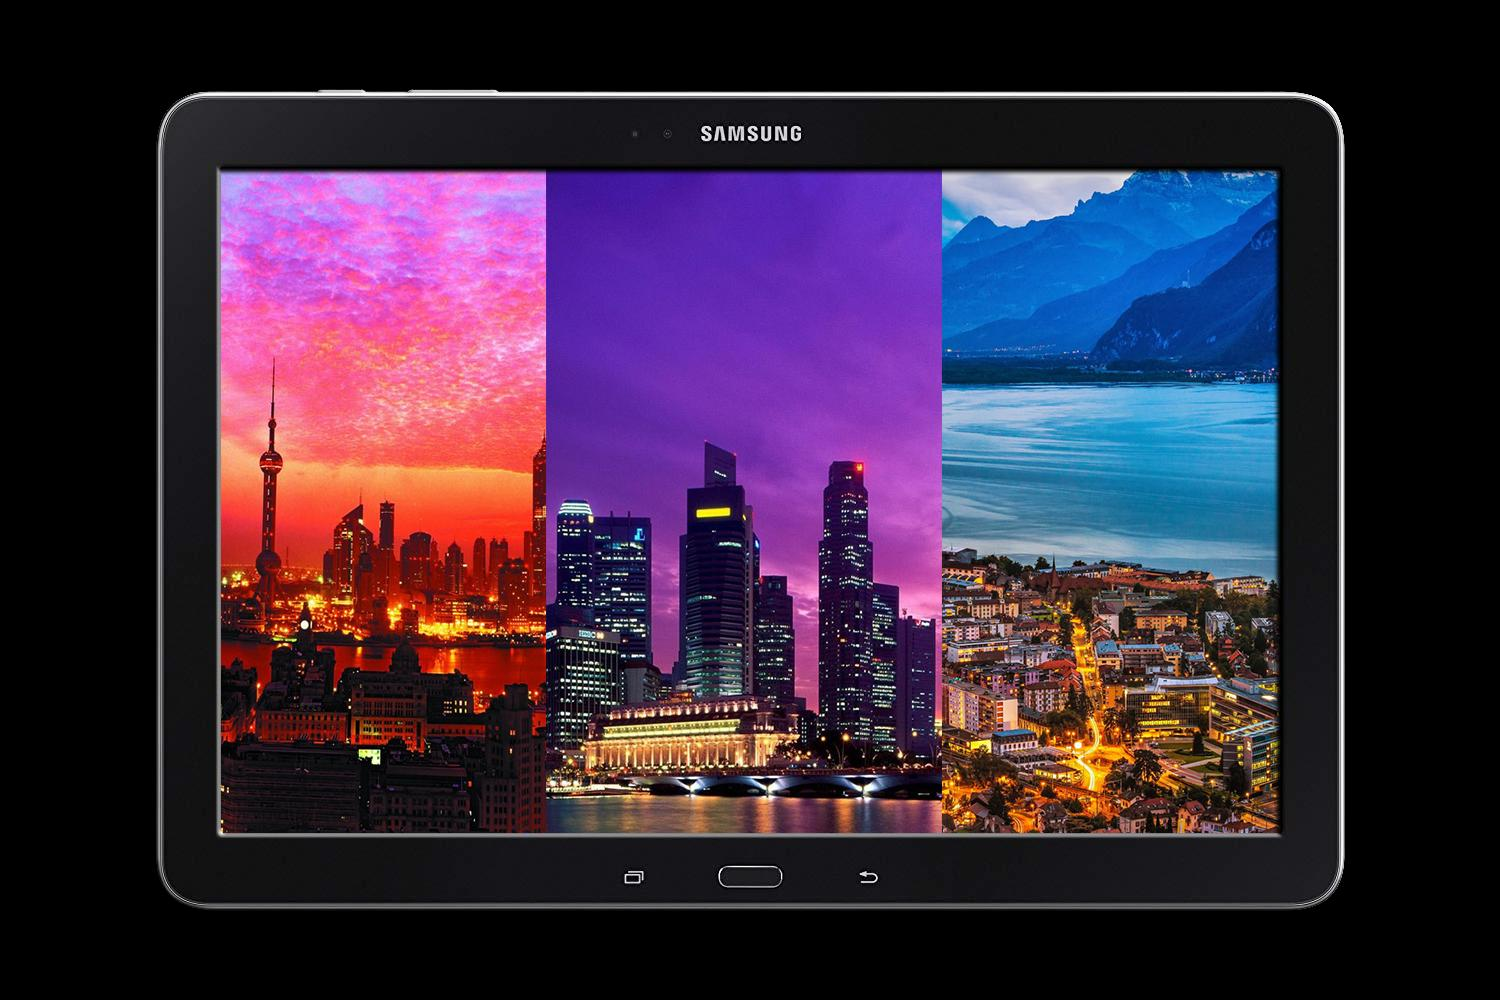 Night City S Wallpapers 4k City Wallpapers Hd For Android Apk Download